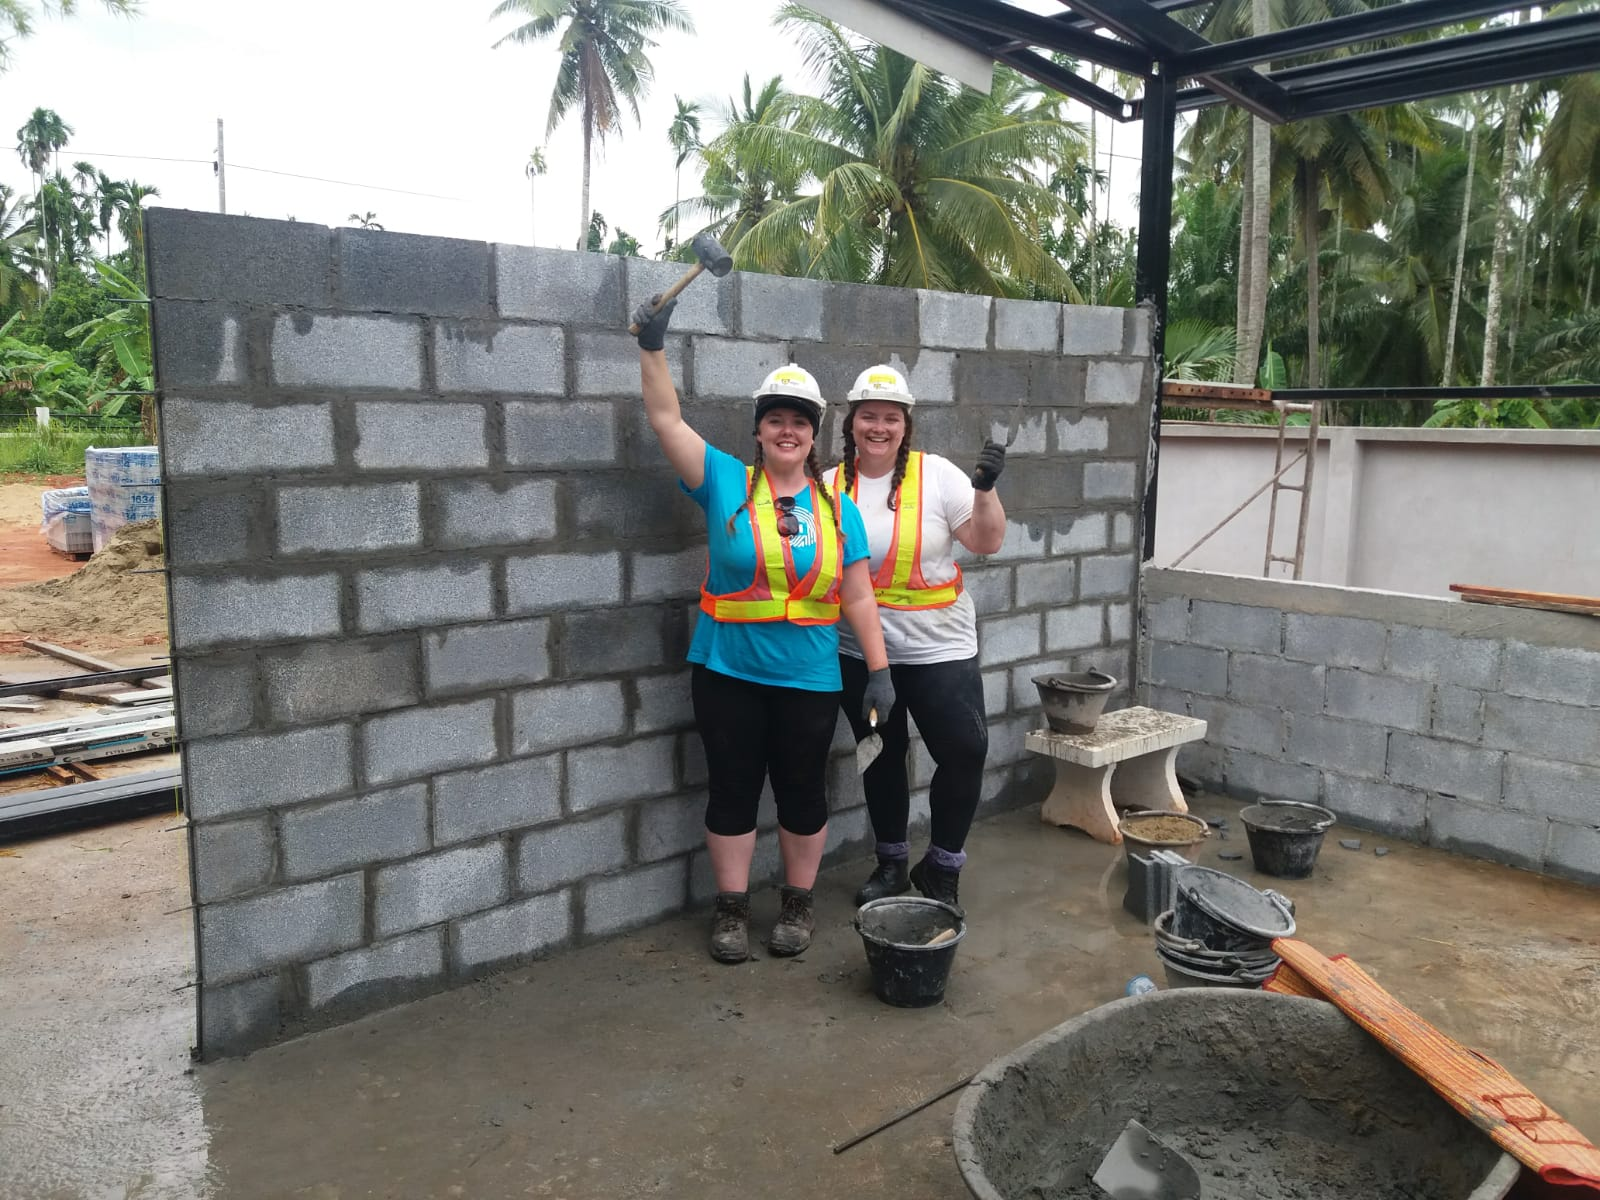 AECOM woman manager volunteering Thailand